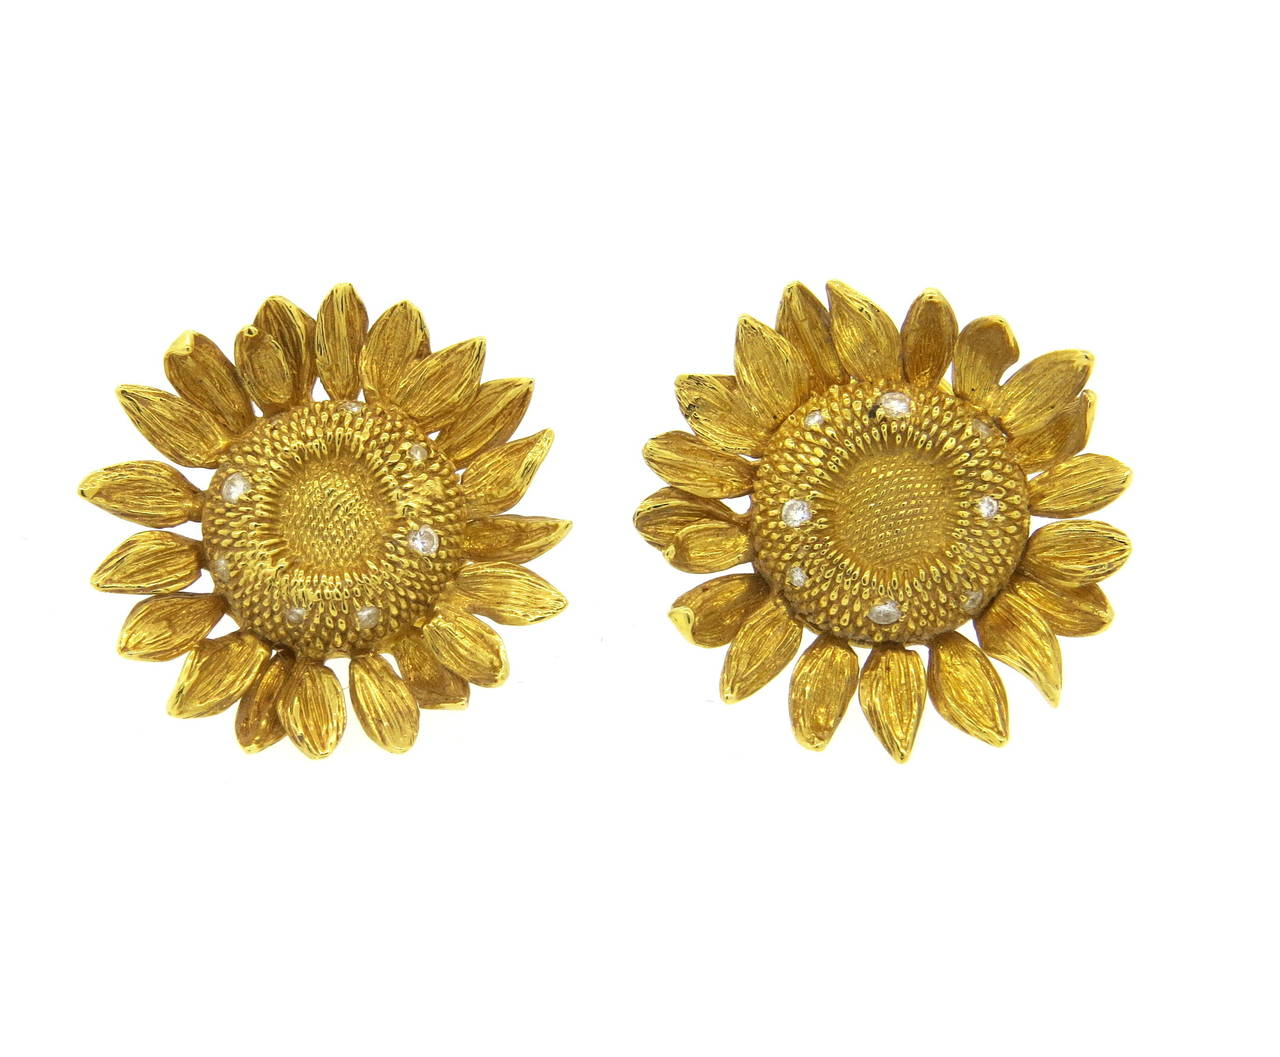 Large 18k Gold Sunflower Earrings Crafted By Asprey Of London Set With Diamonds